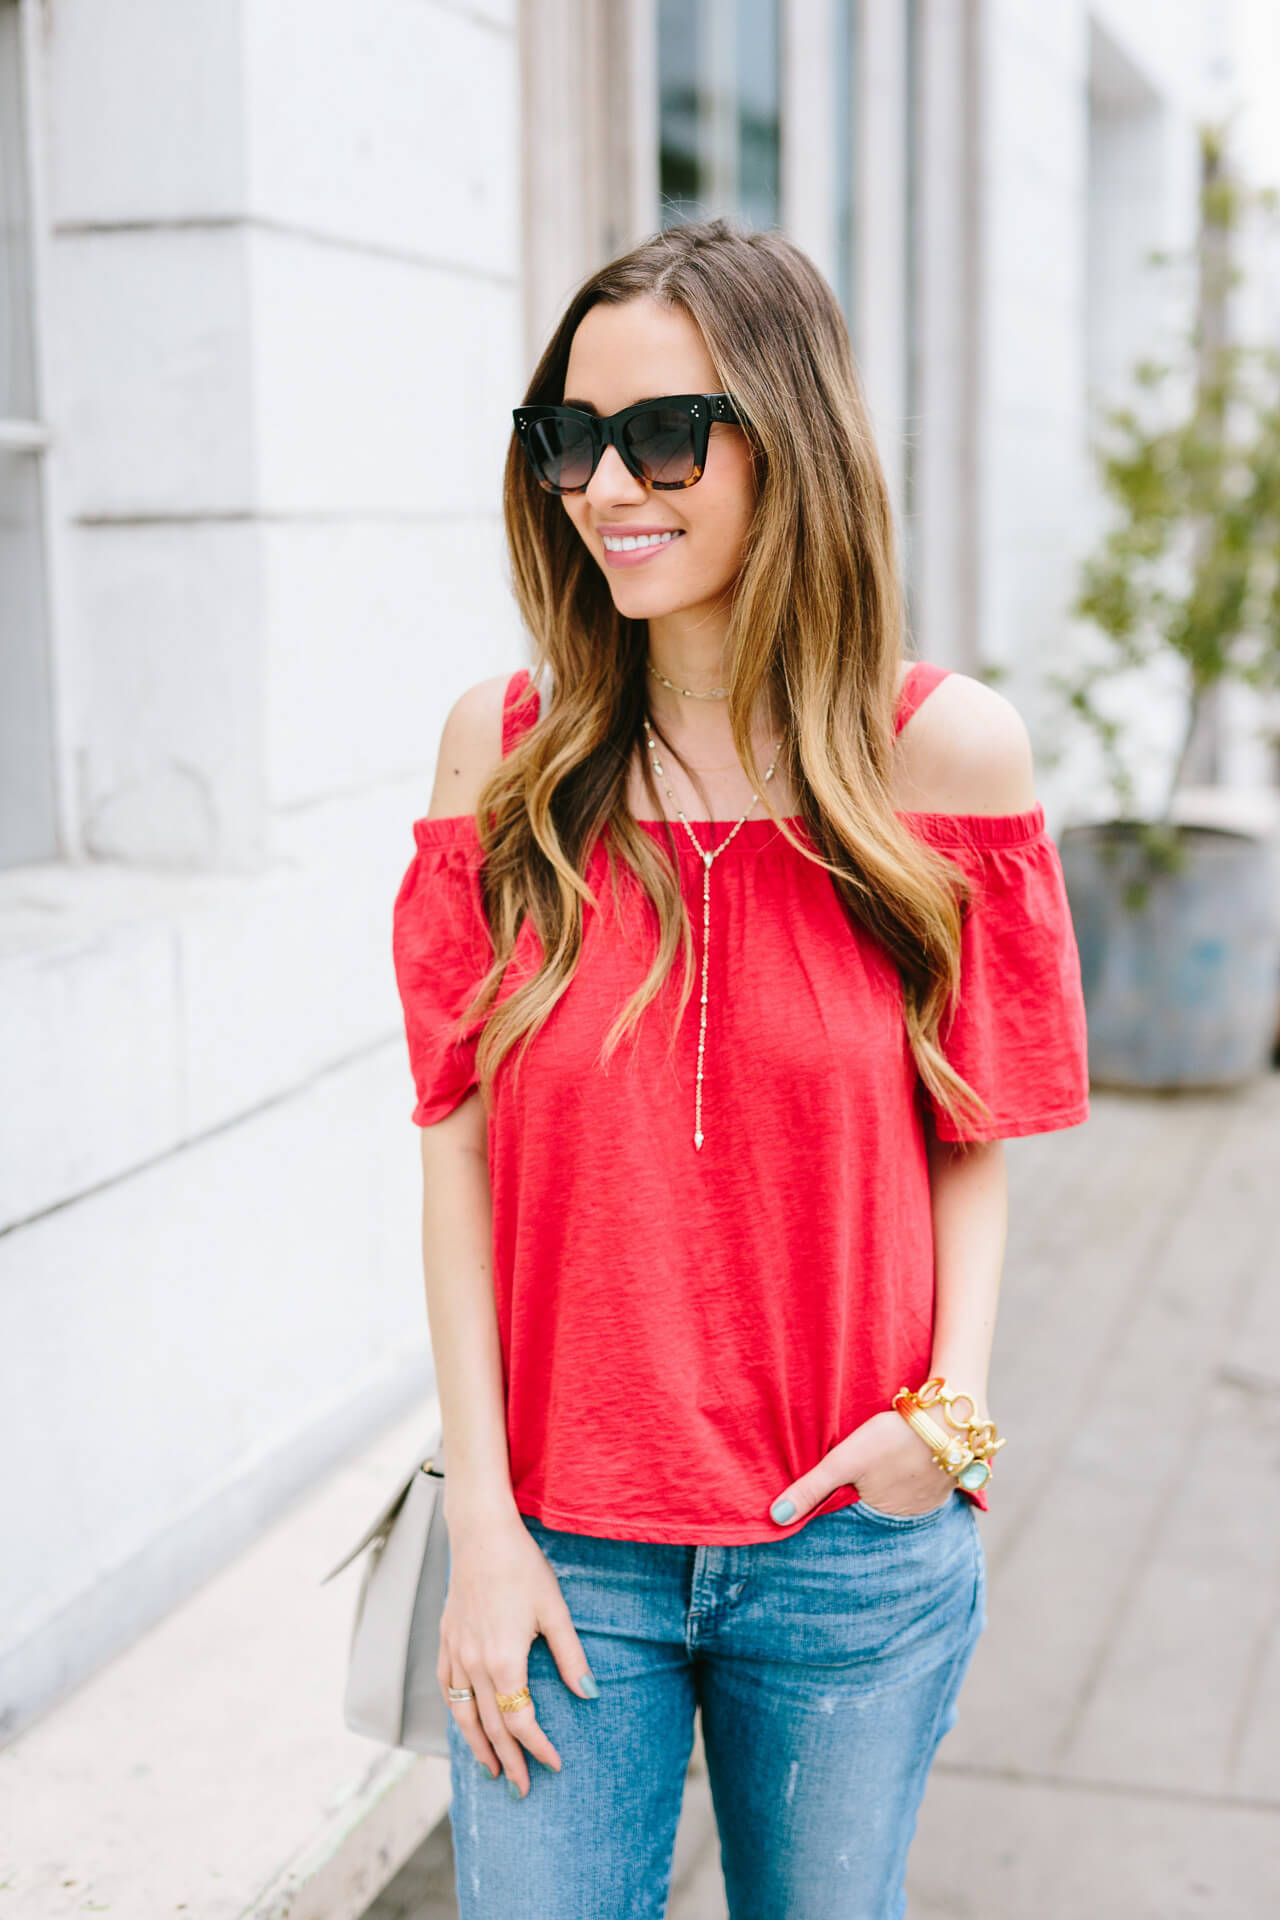 17 Best Red images | Clothes, Fashion, Style